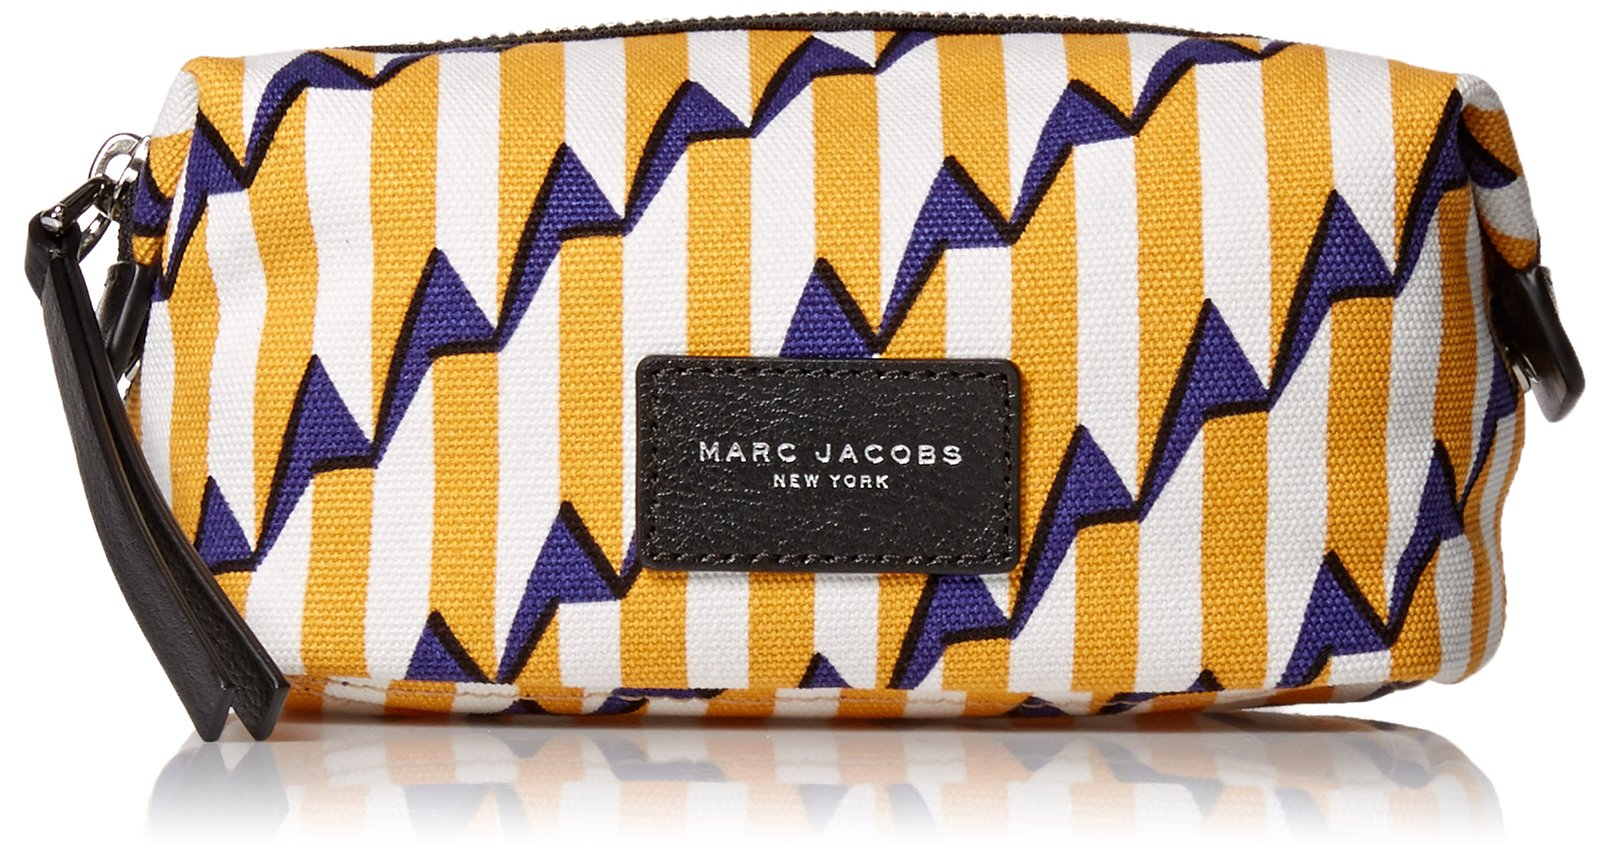 Marc Jacobs Arrow Head Printed Biker Cosmetics Landscape Pouch, Pyramid Yellow Paris Multi, One Size